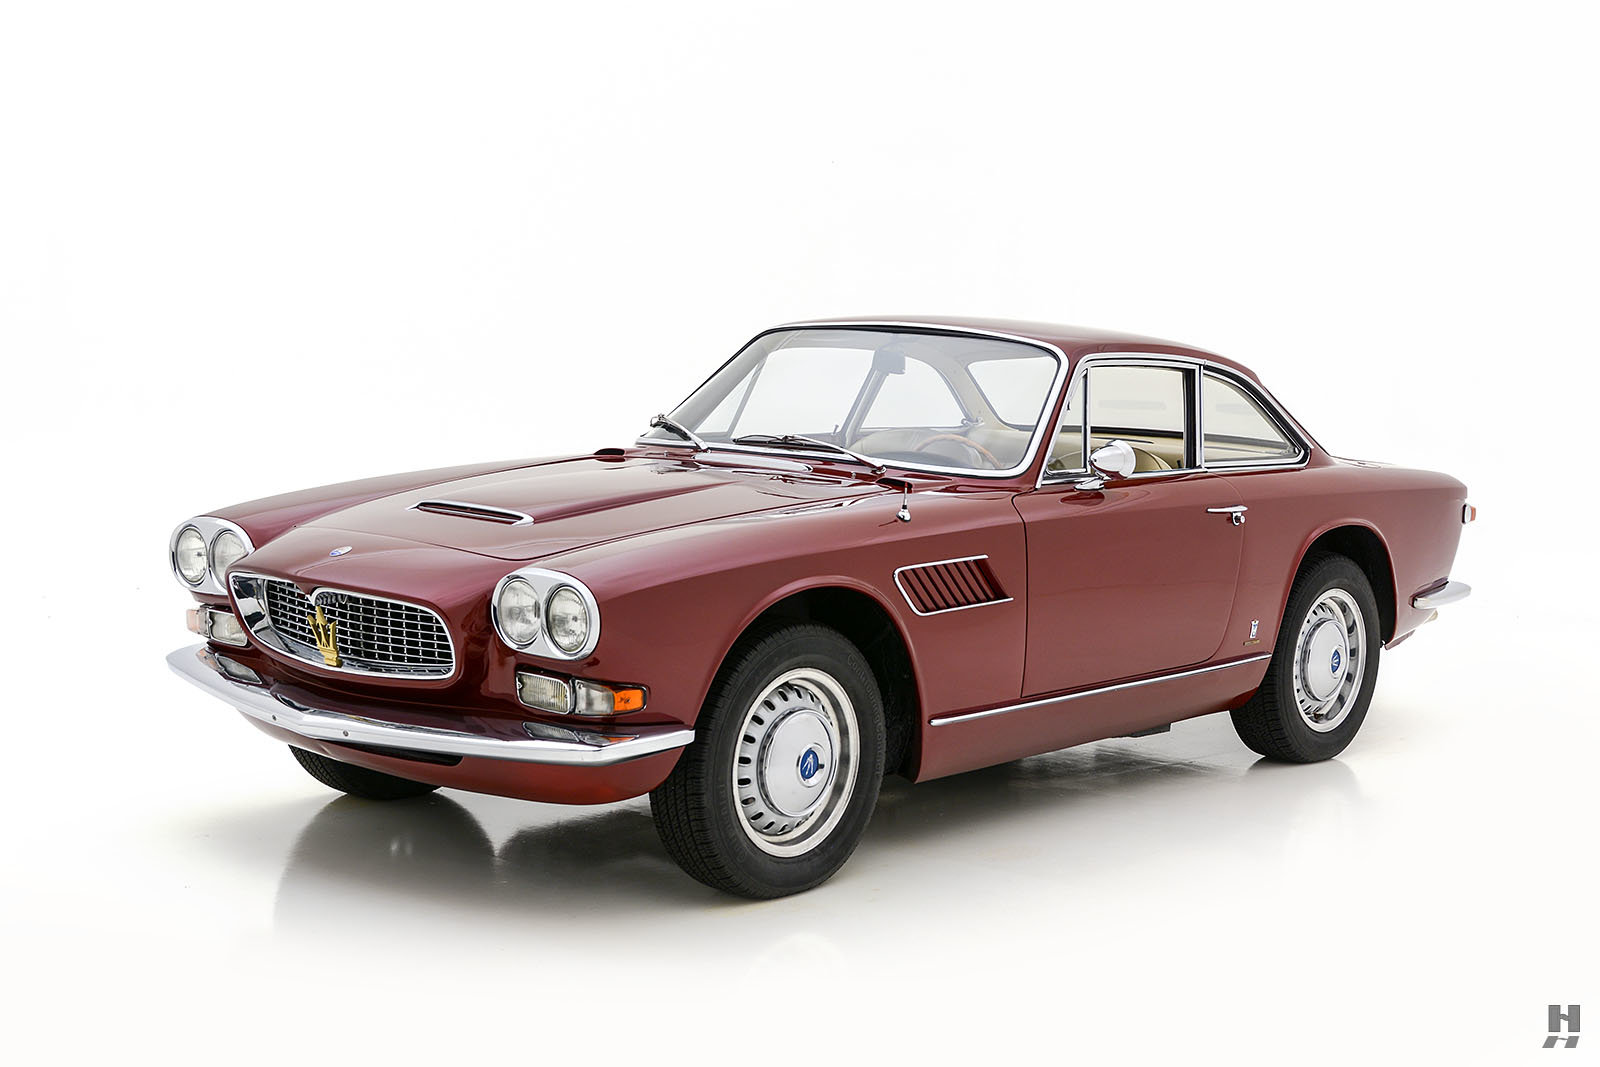 1965 MASERATI SEBRING COUPE For Sale (picture 1 of 6)